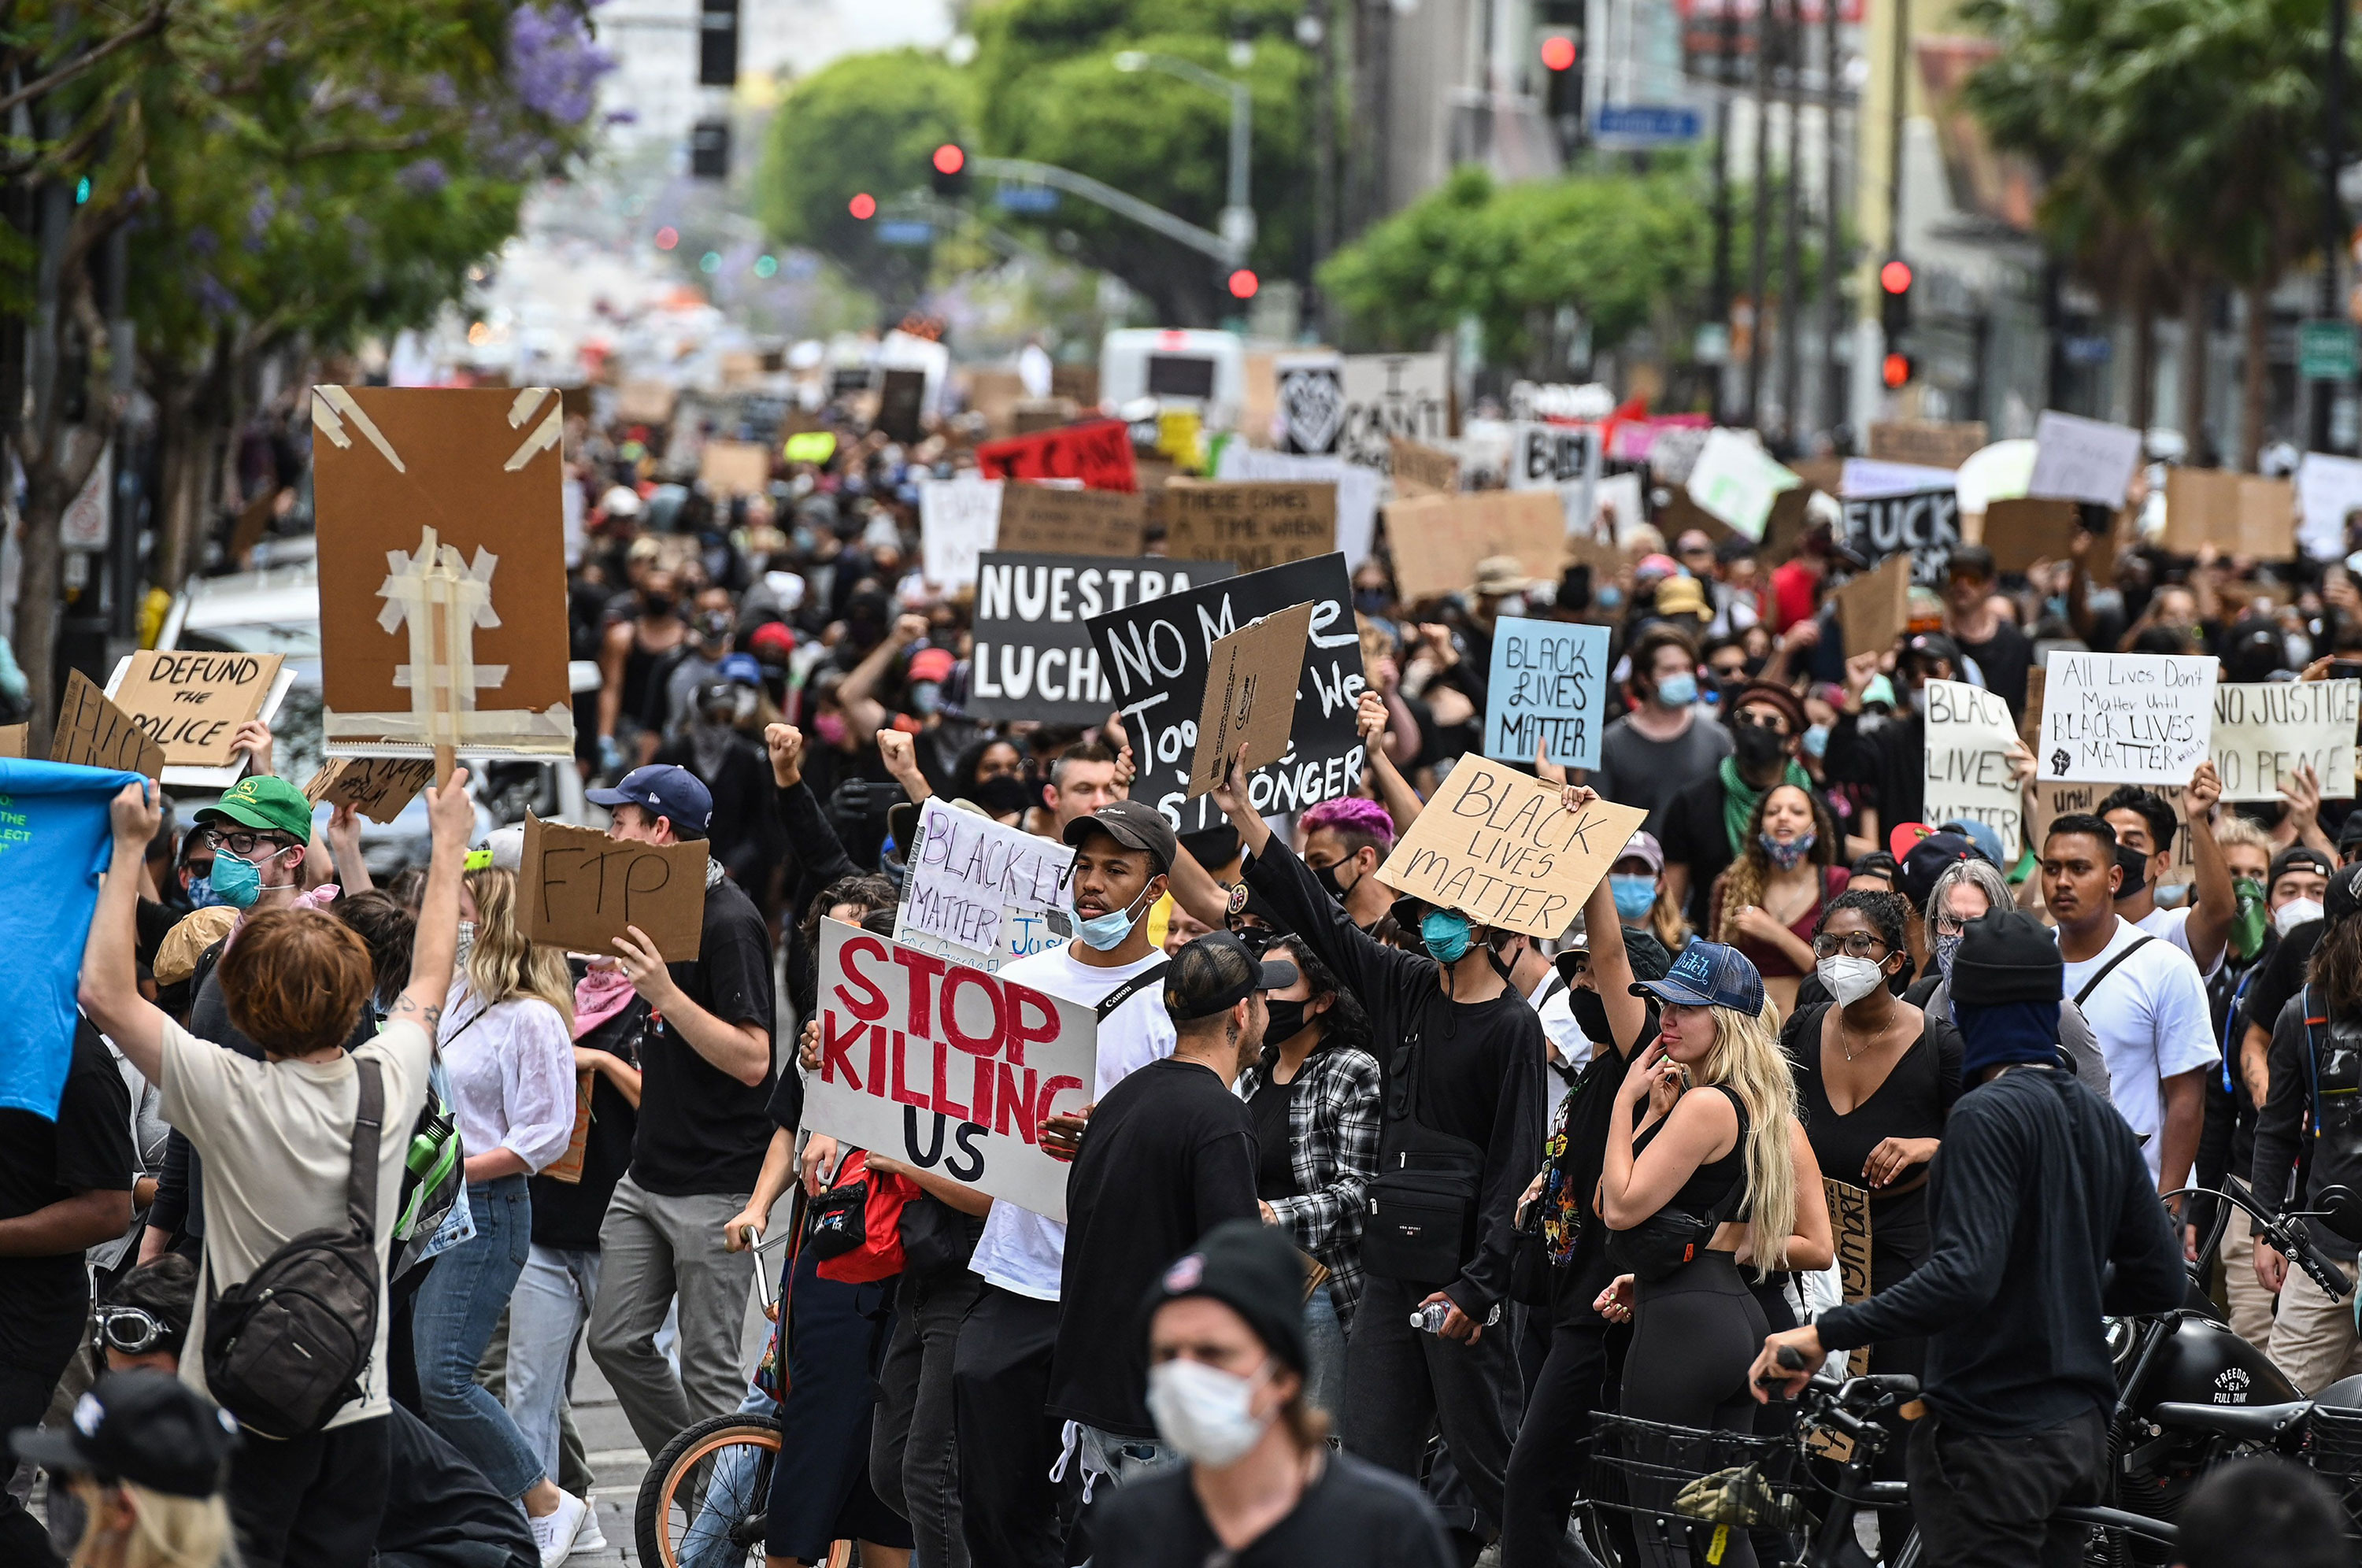 Demonstrators march through the streets on June 2 in Los Angeles.